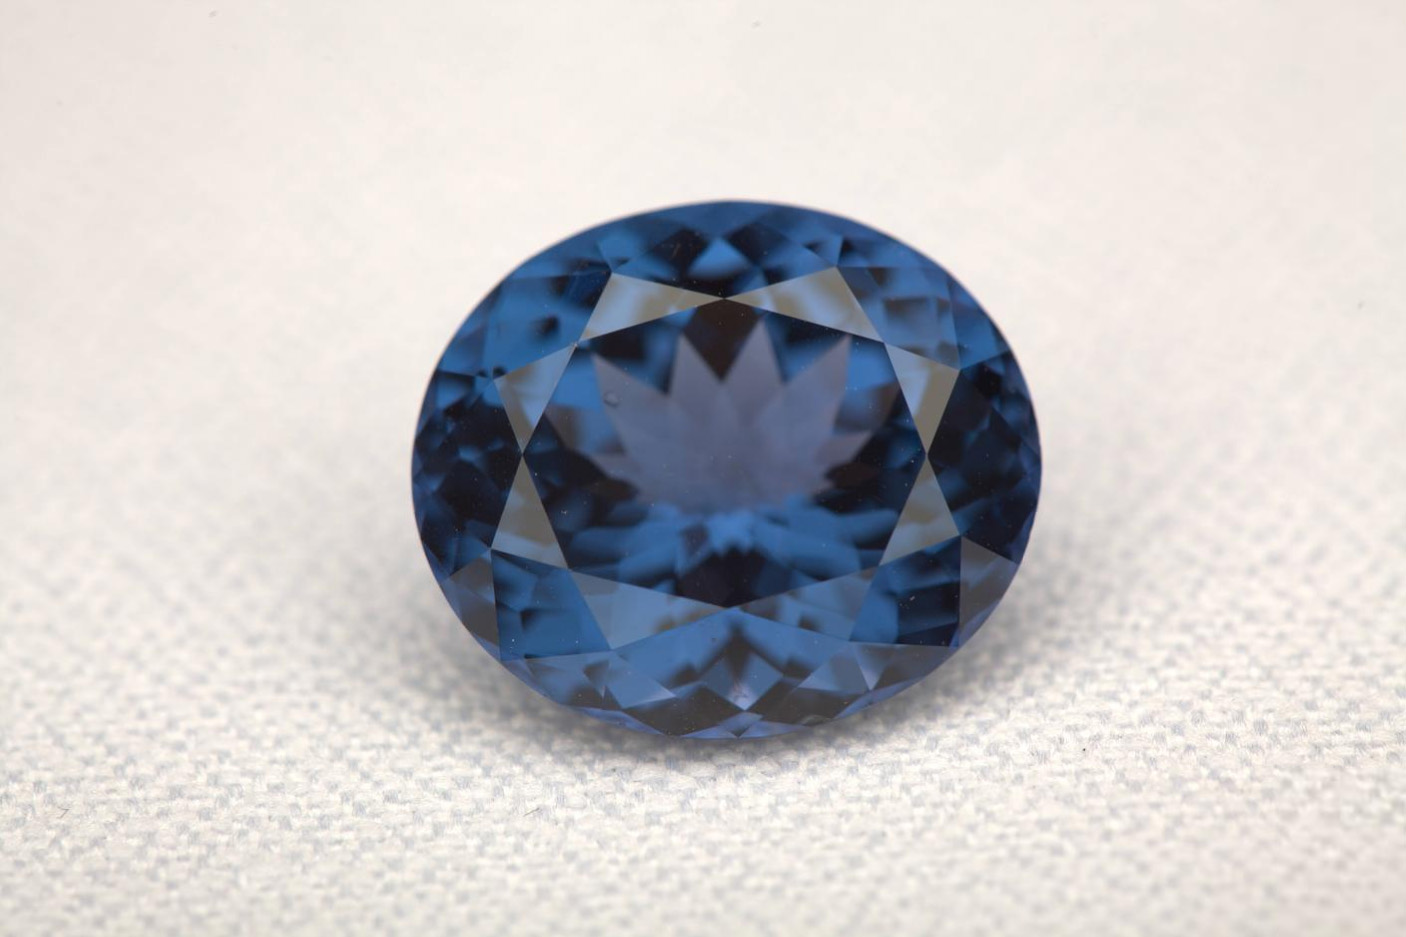 birthstone-august-spinel-sri-lanka-blue-spinel